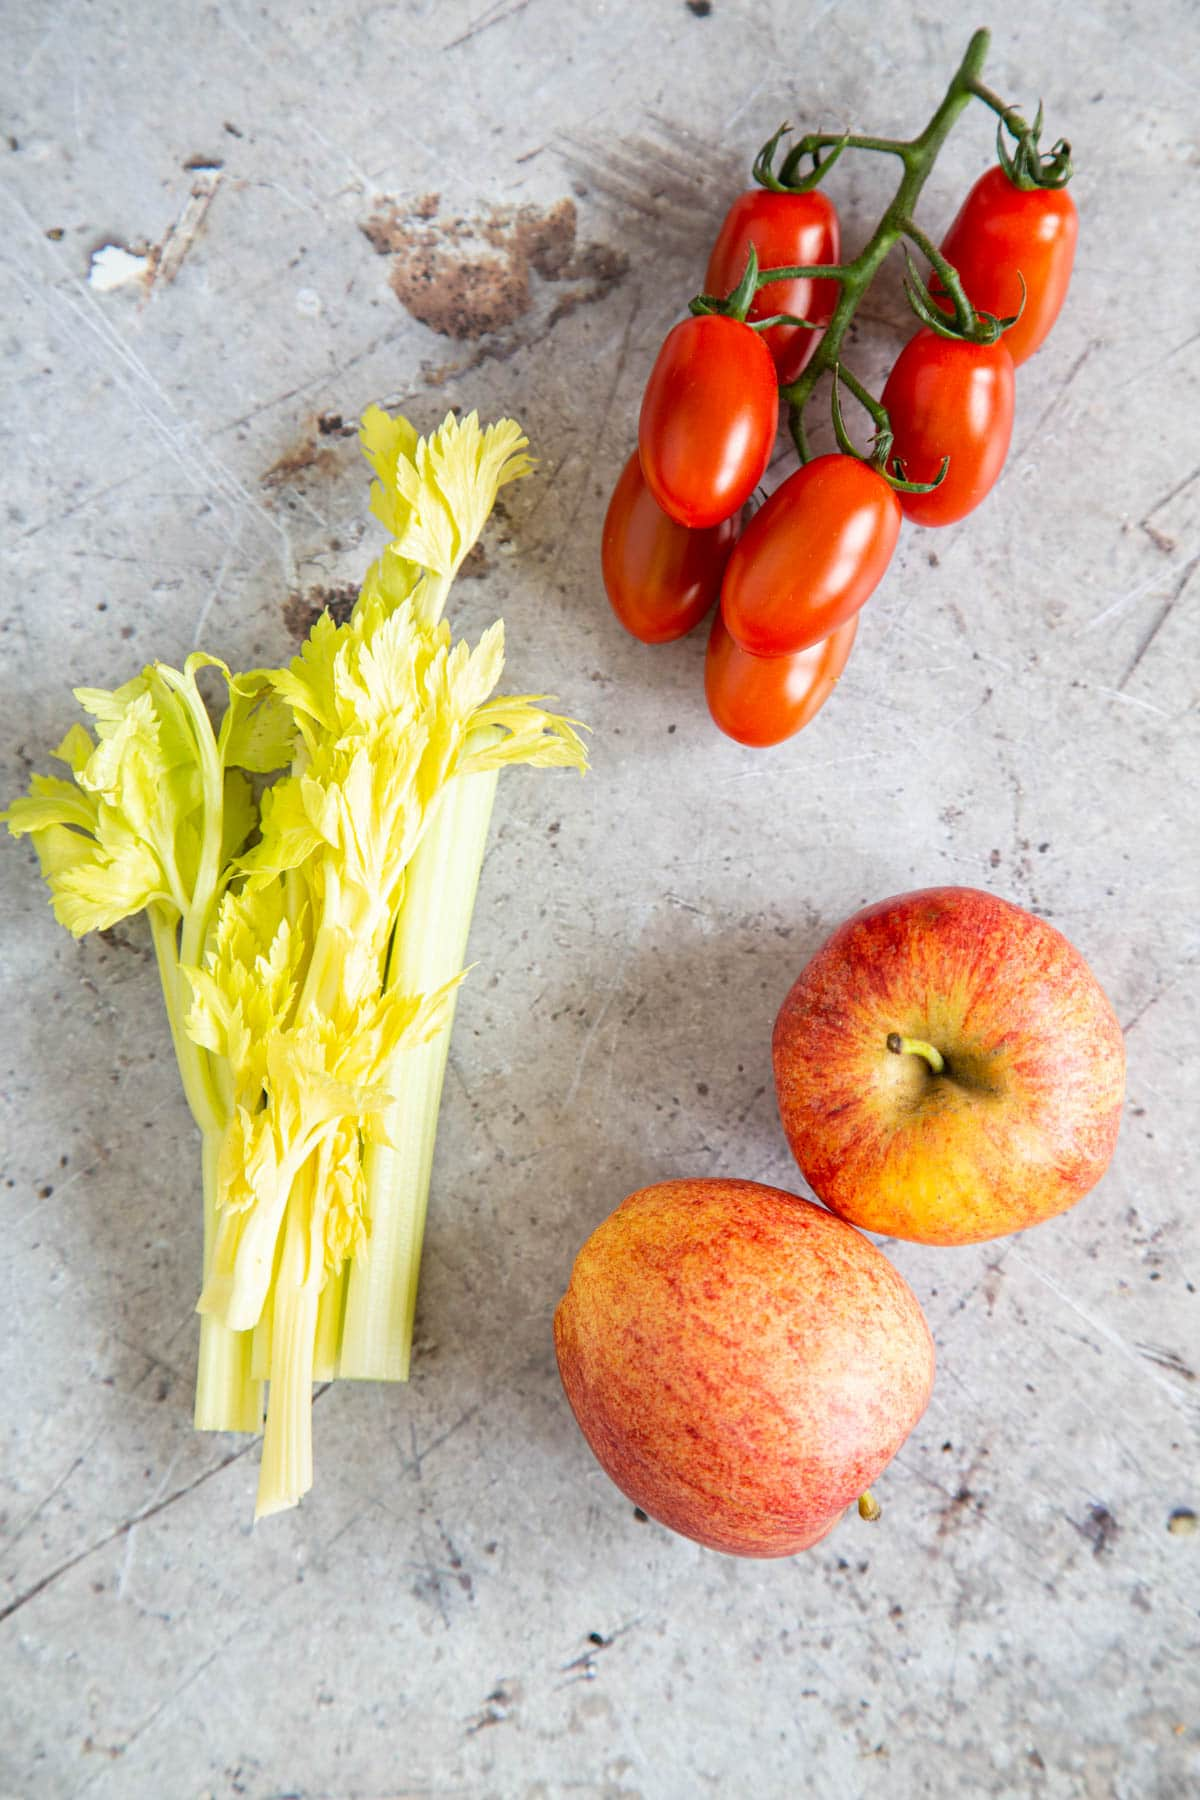 Two apples, some tomatoes on the vine, and some half sticks of celery, pictured from above.